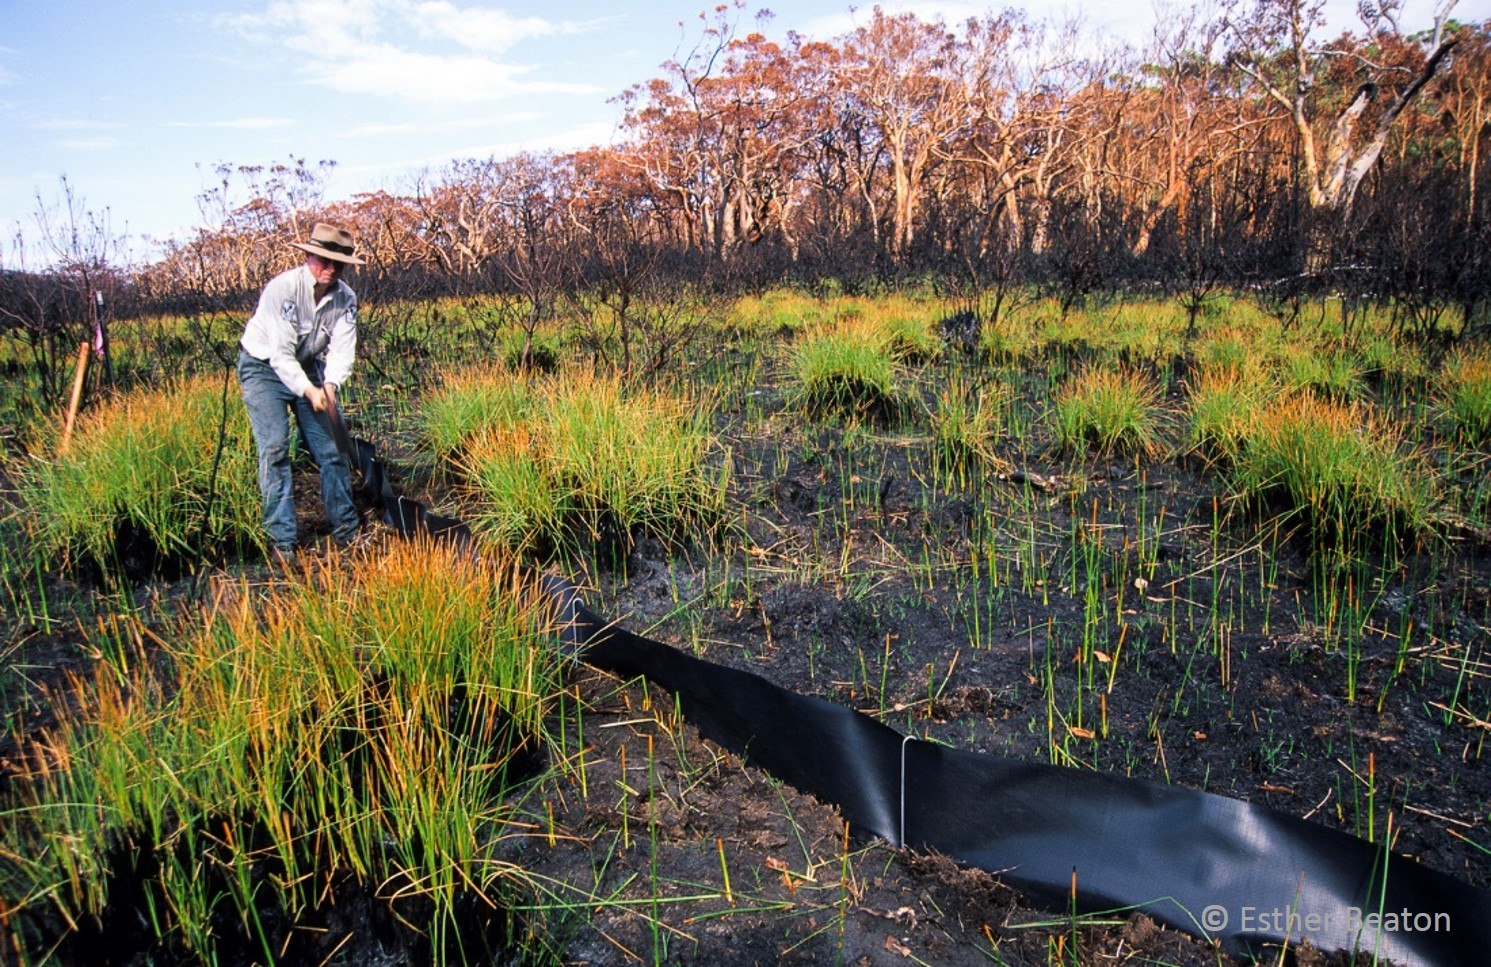 Chris sets up a drift fence following a major wildfire at Booderee in 2003. Photo credit: Esther Beaton.